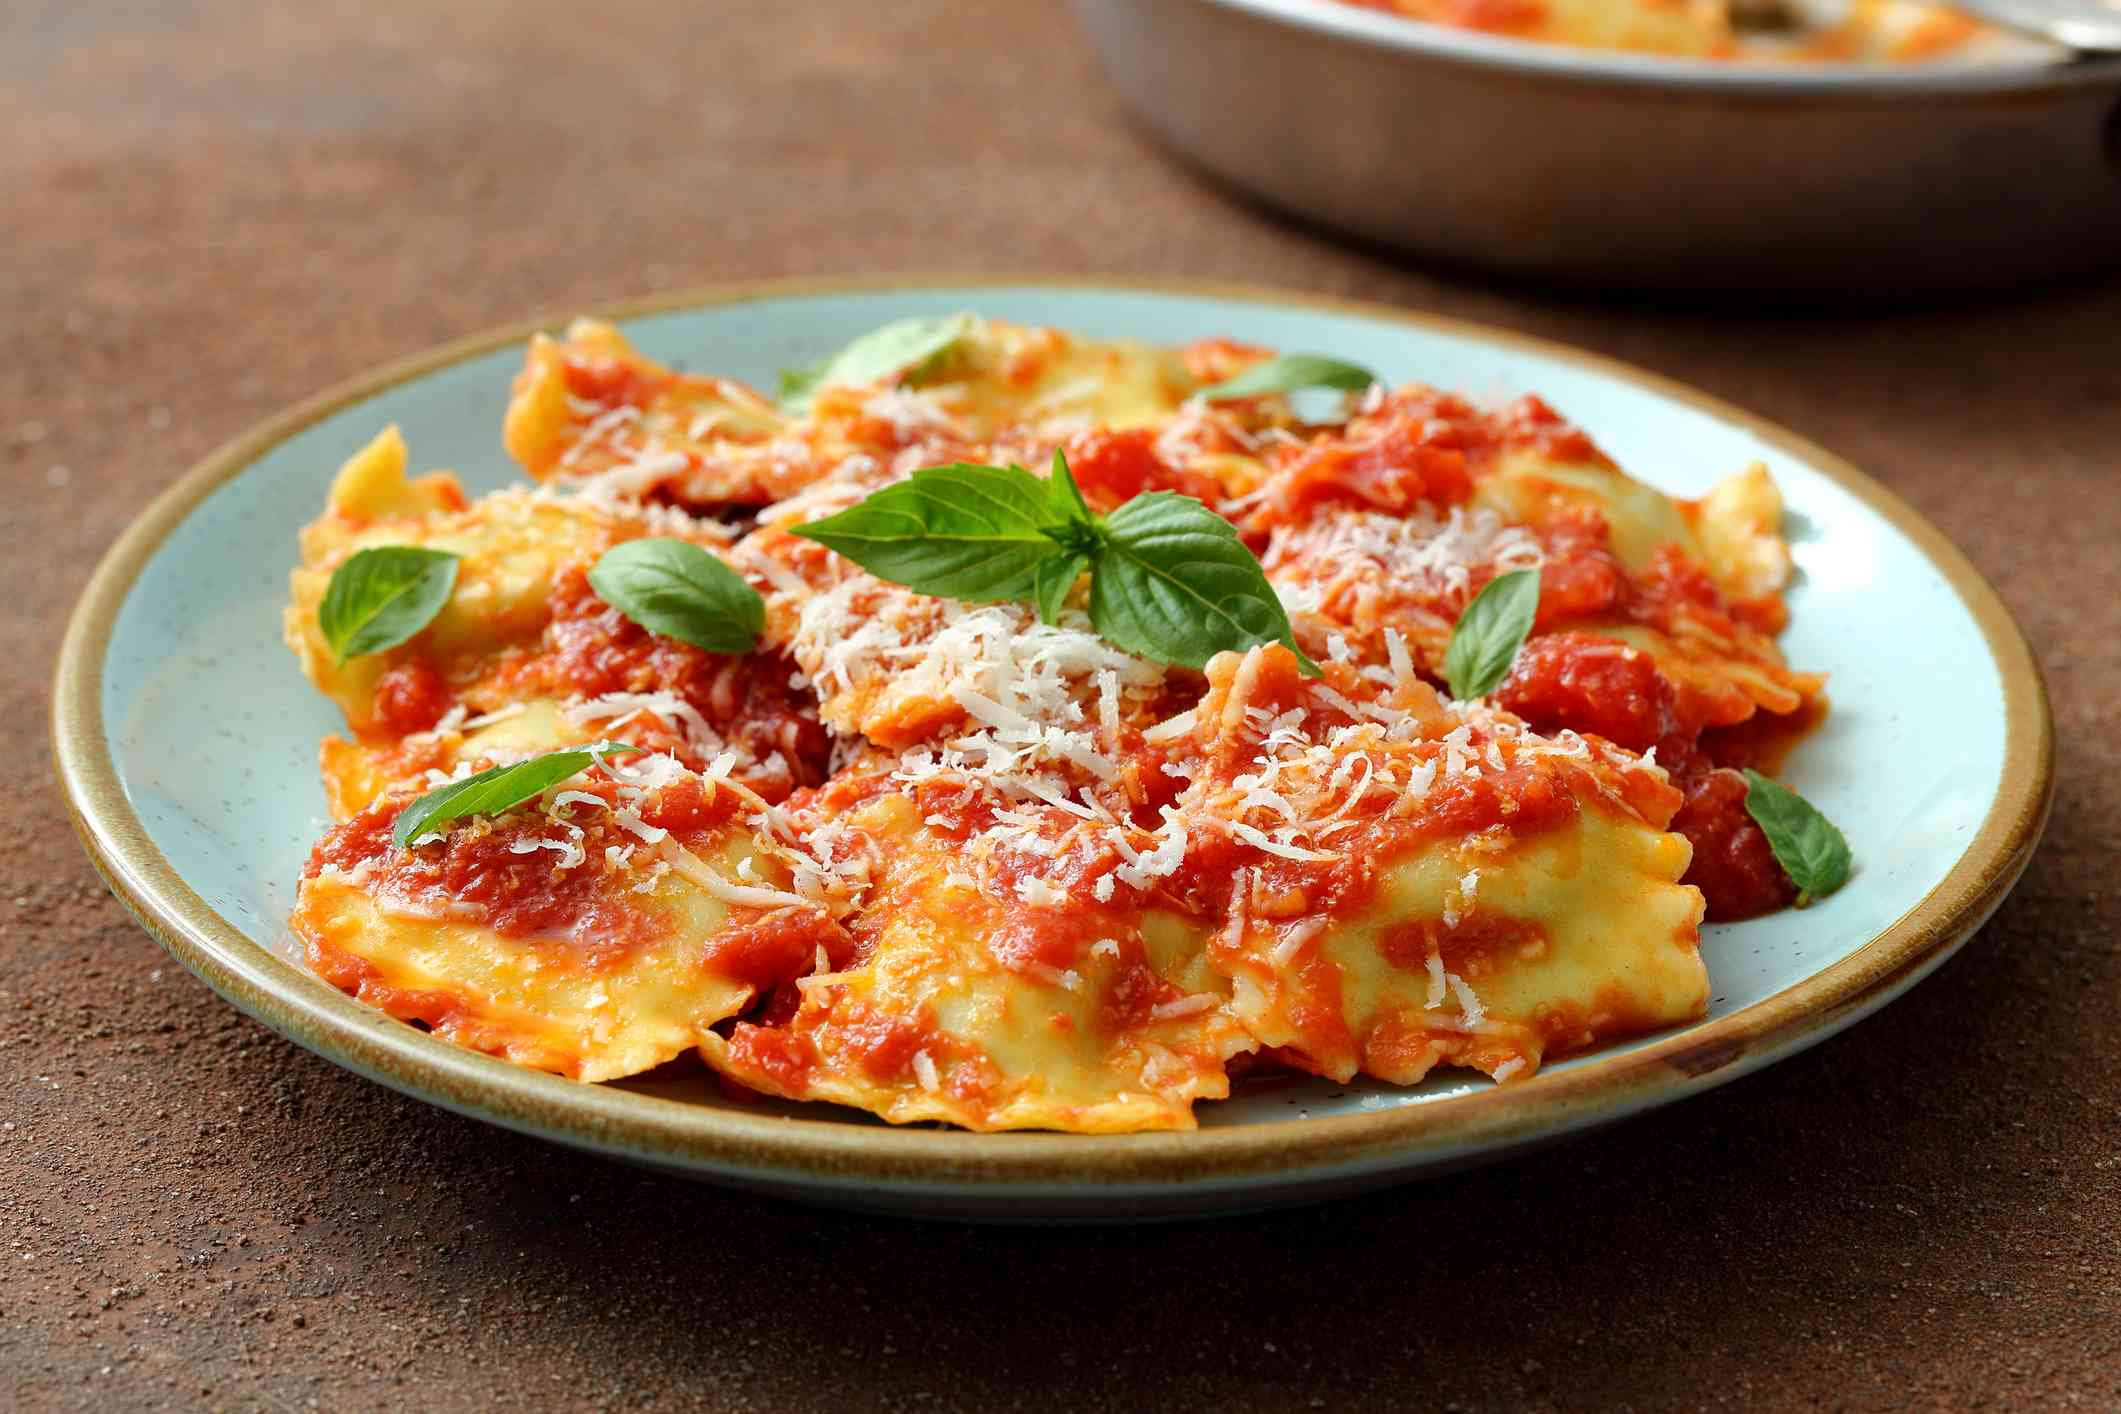 Ravioli with tomato sauce and parmesan in metal bowl on tabletop